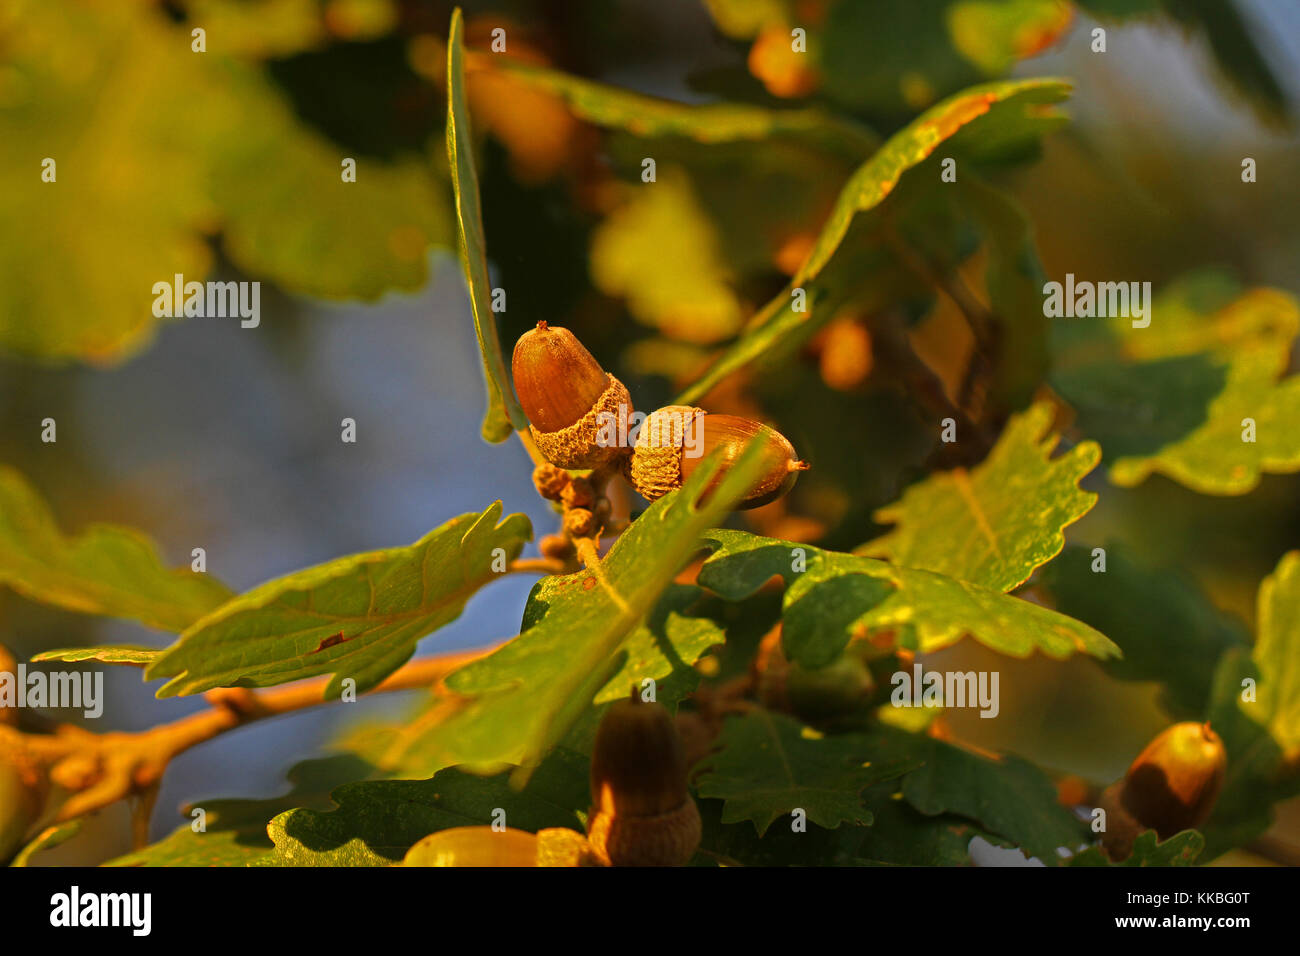 two acorns or oak nuts Latin balanus on an Italian oak tree in autumn  in Italy Latin quercus UK national trail - Stock Image